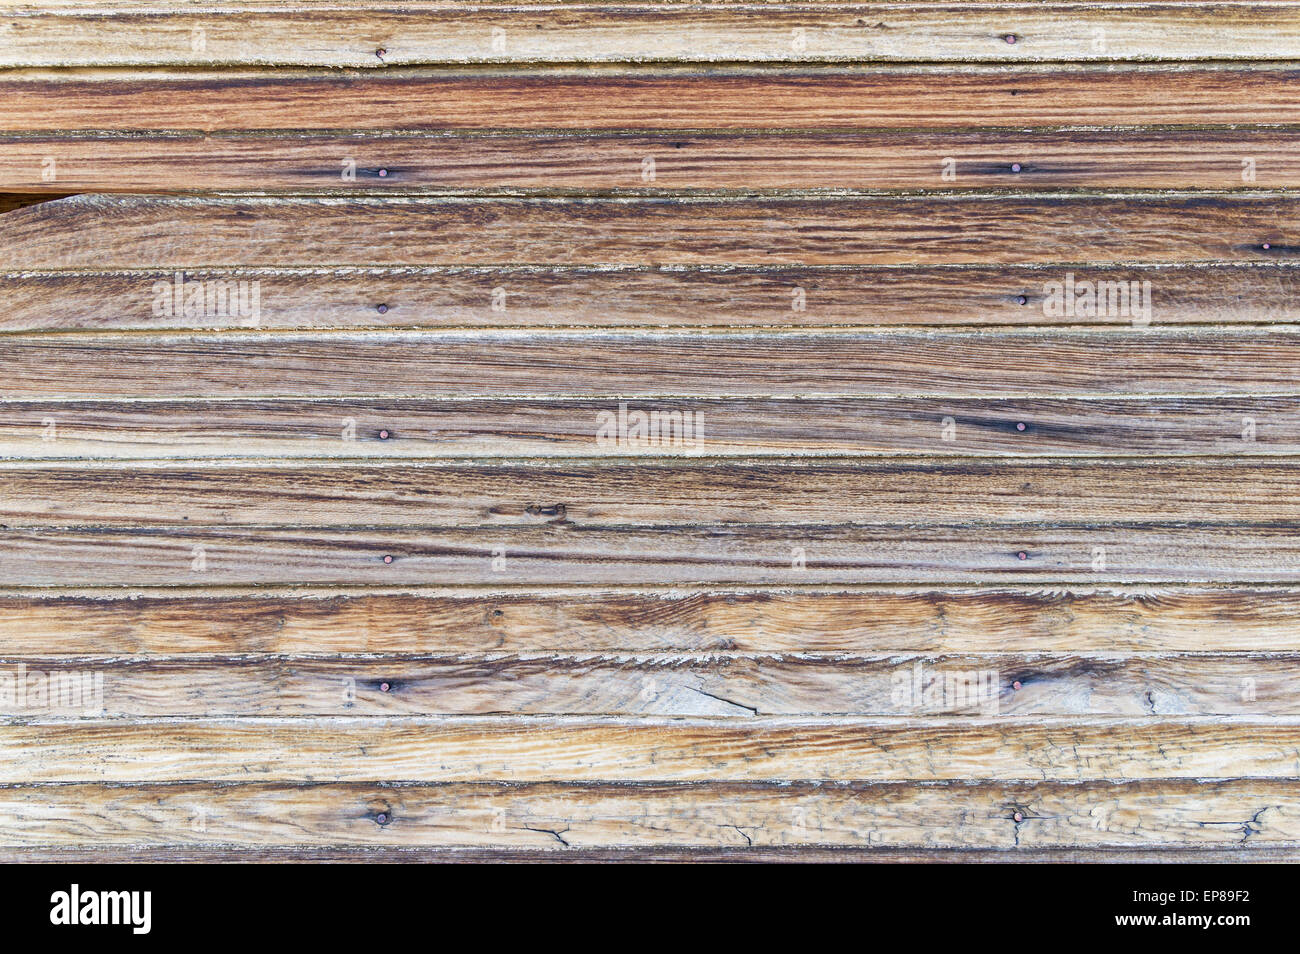 old weathered wood wall background texture from a ghost town building - Stock Image